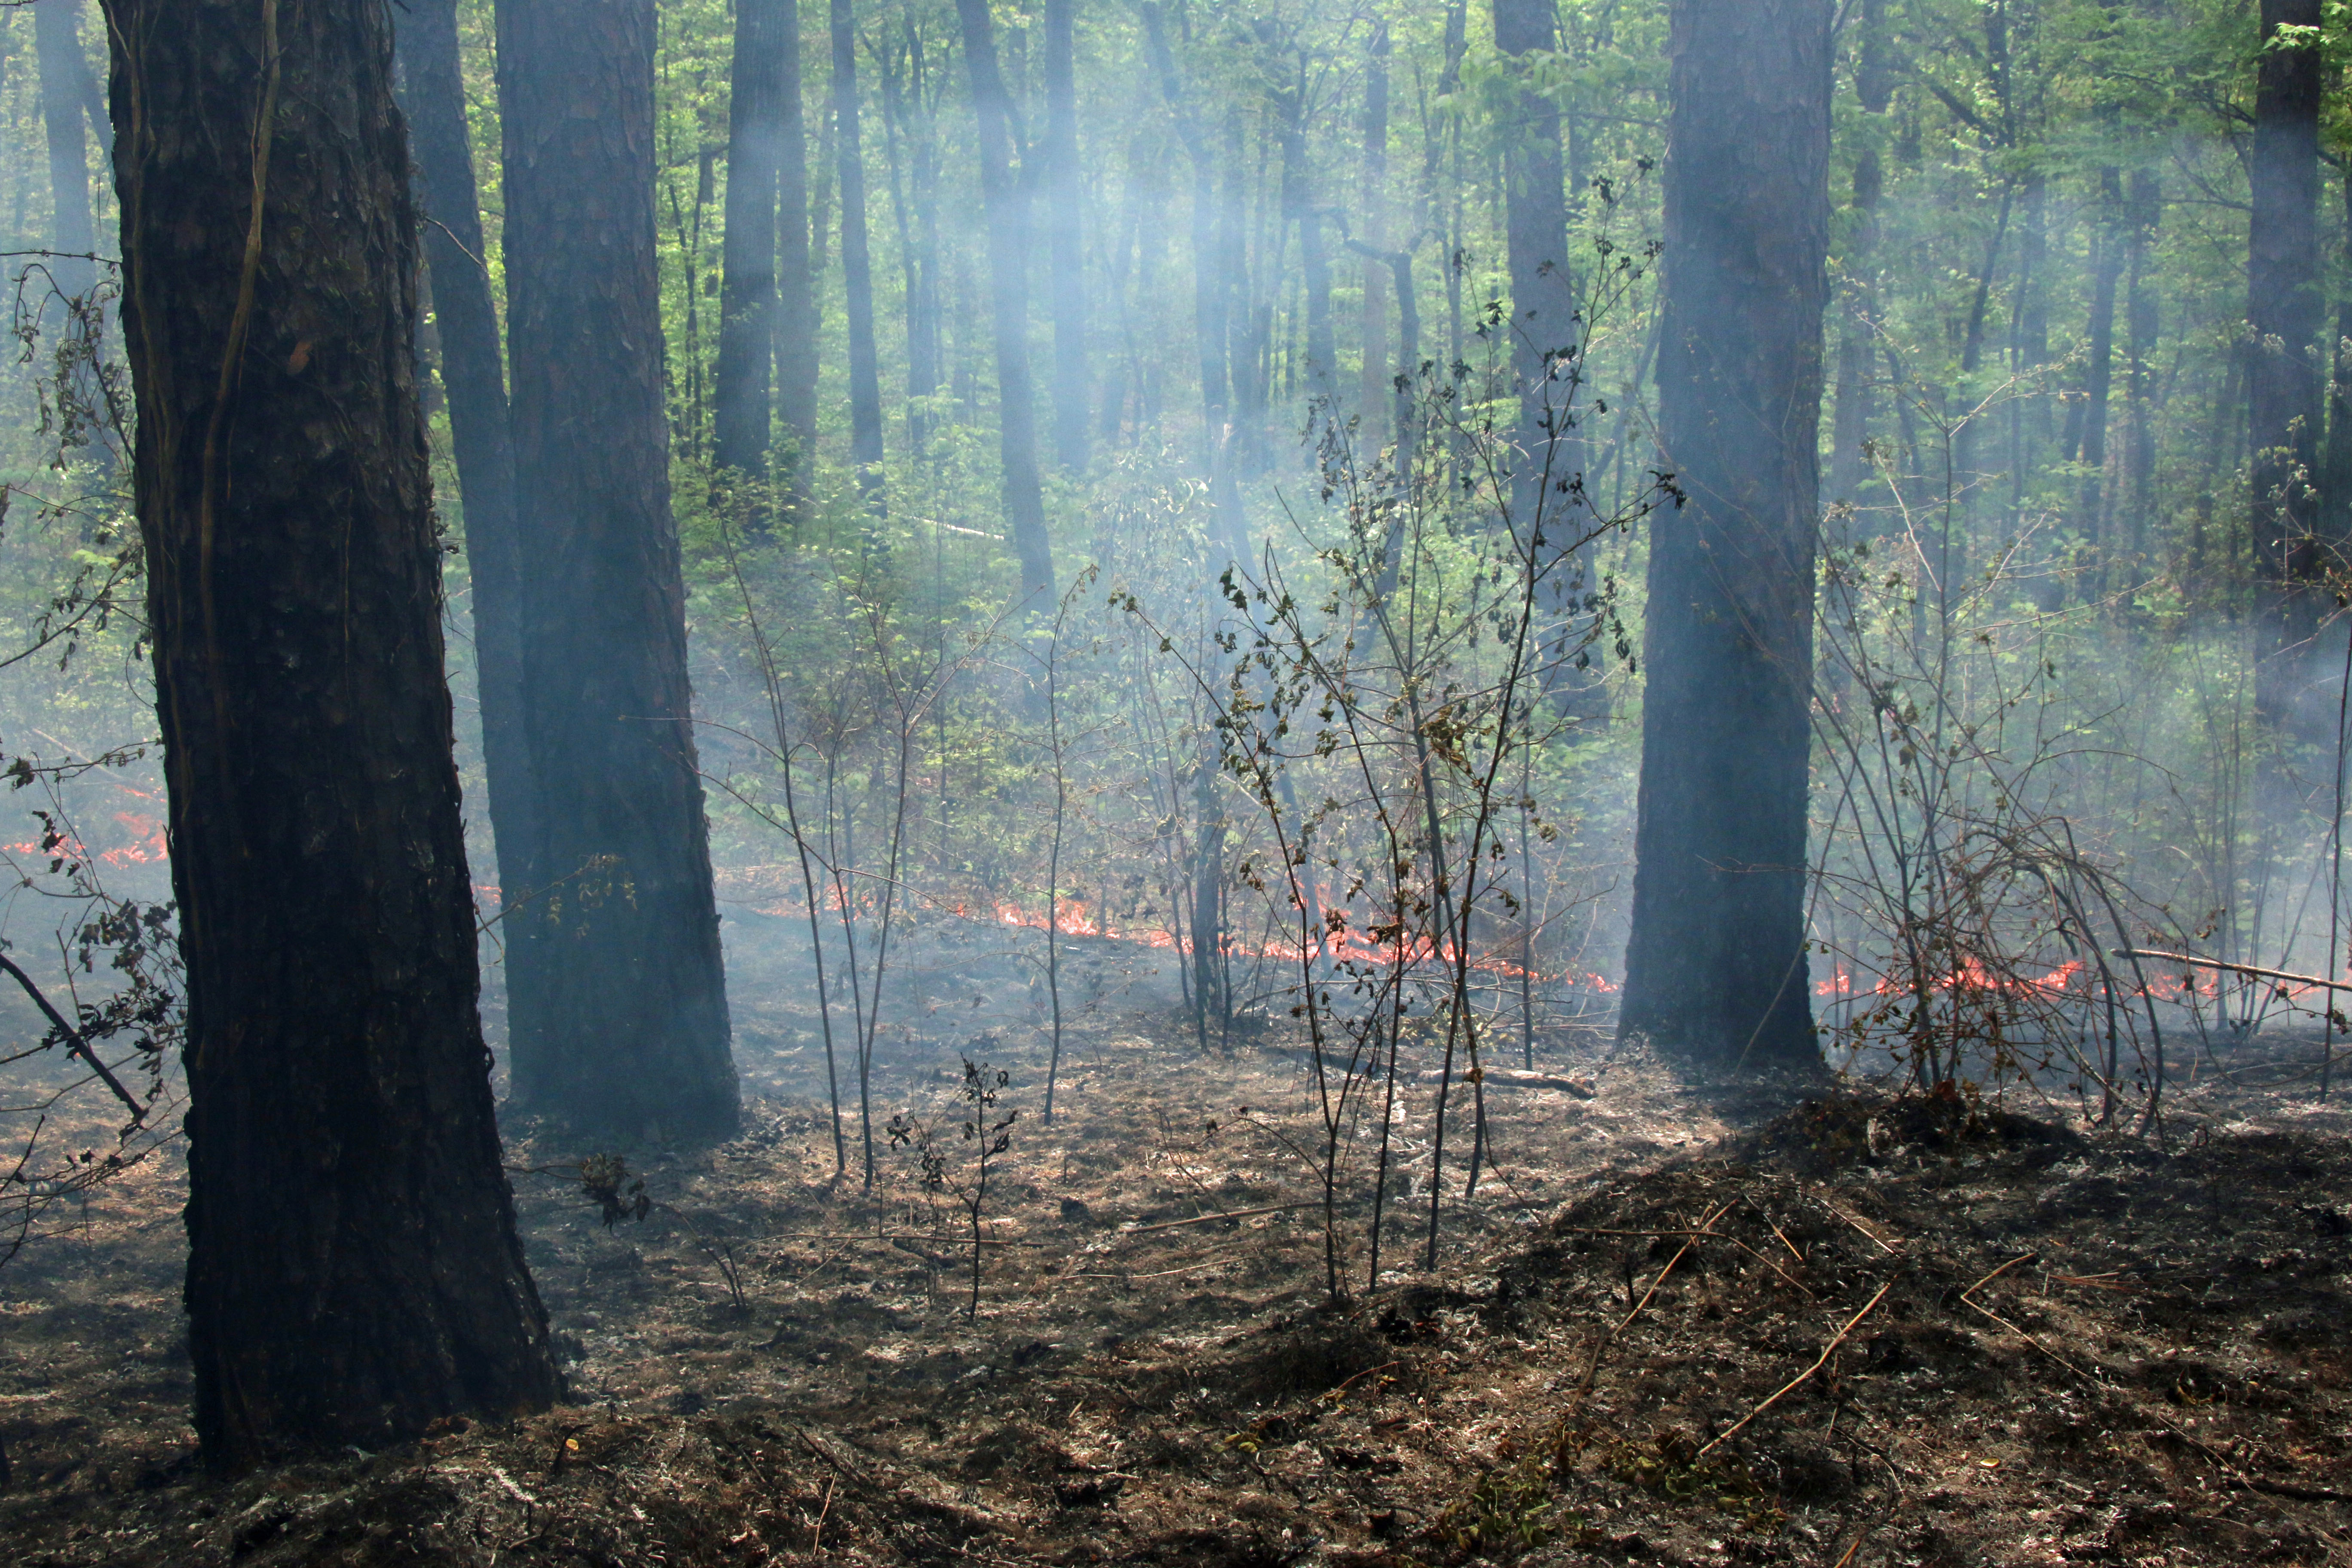 Over the years, part of land management in the Talladega National Forest has been controlled burns.